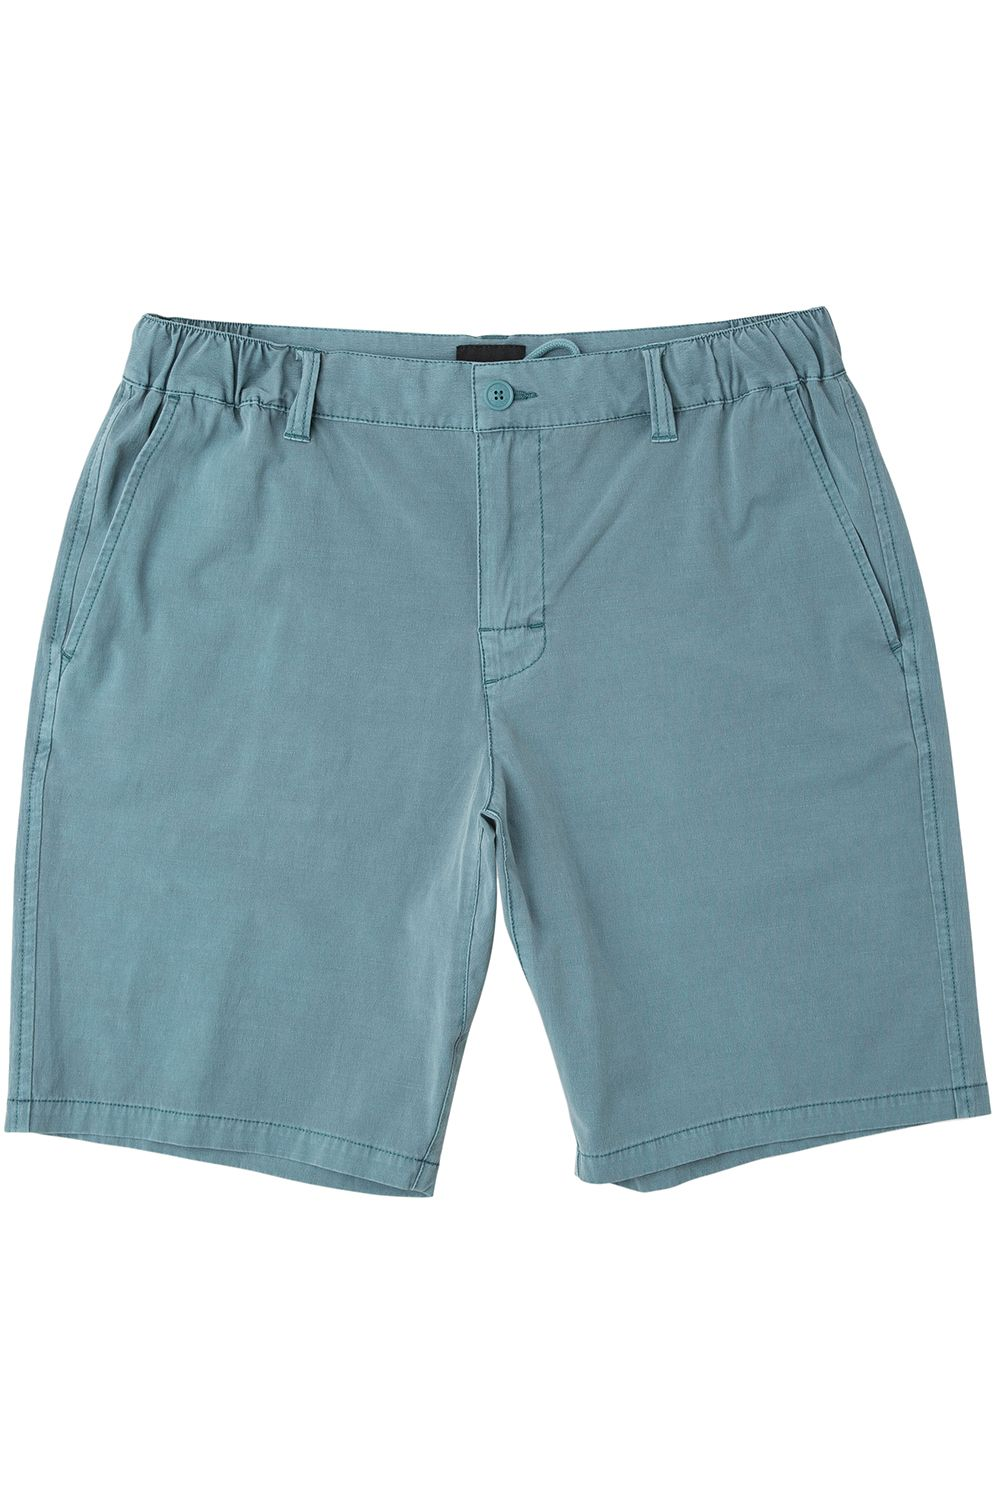 Walkshorts RVCA ALL TIME COASTAL RIN ALL TIME COLLECTION Surplus Blue